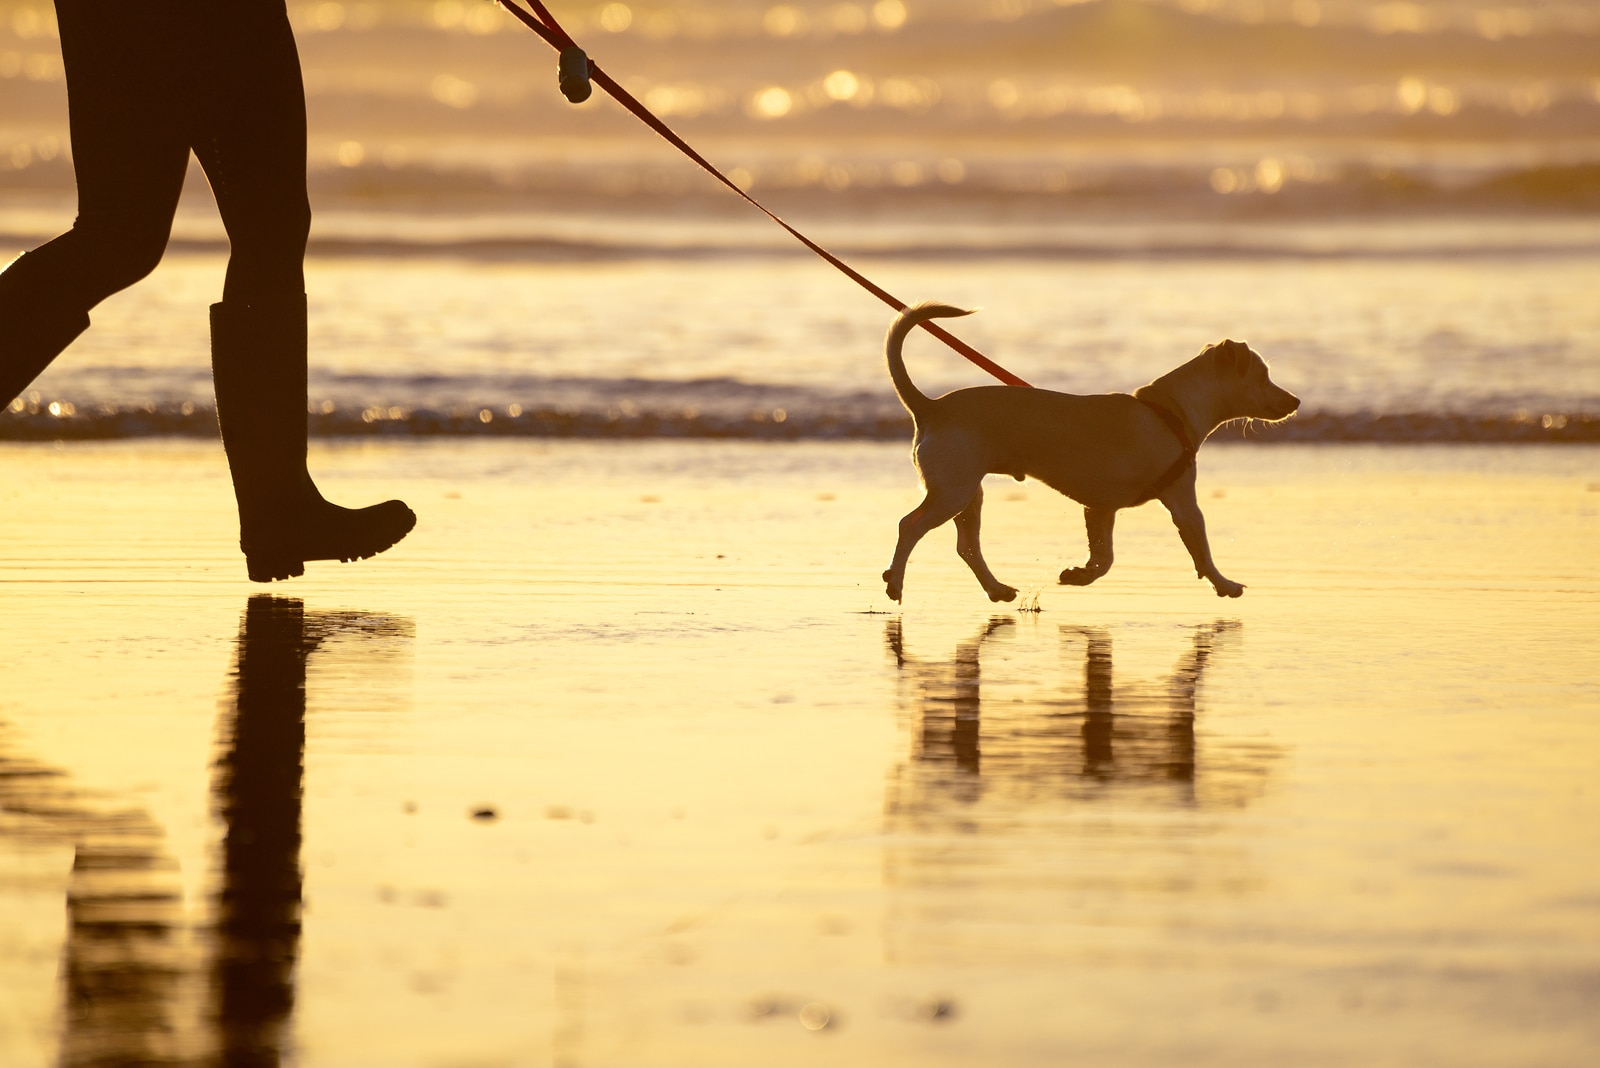 Dog walking on the beach at sunset with owner in tow.